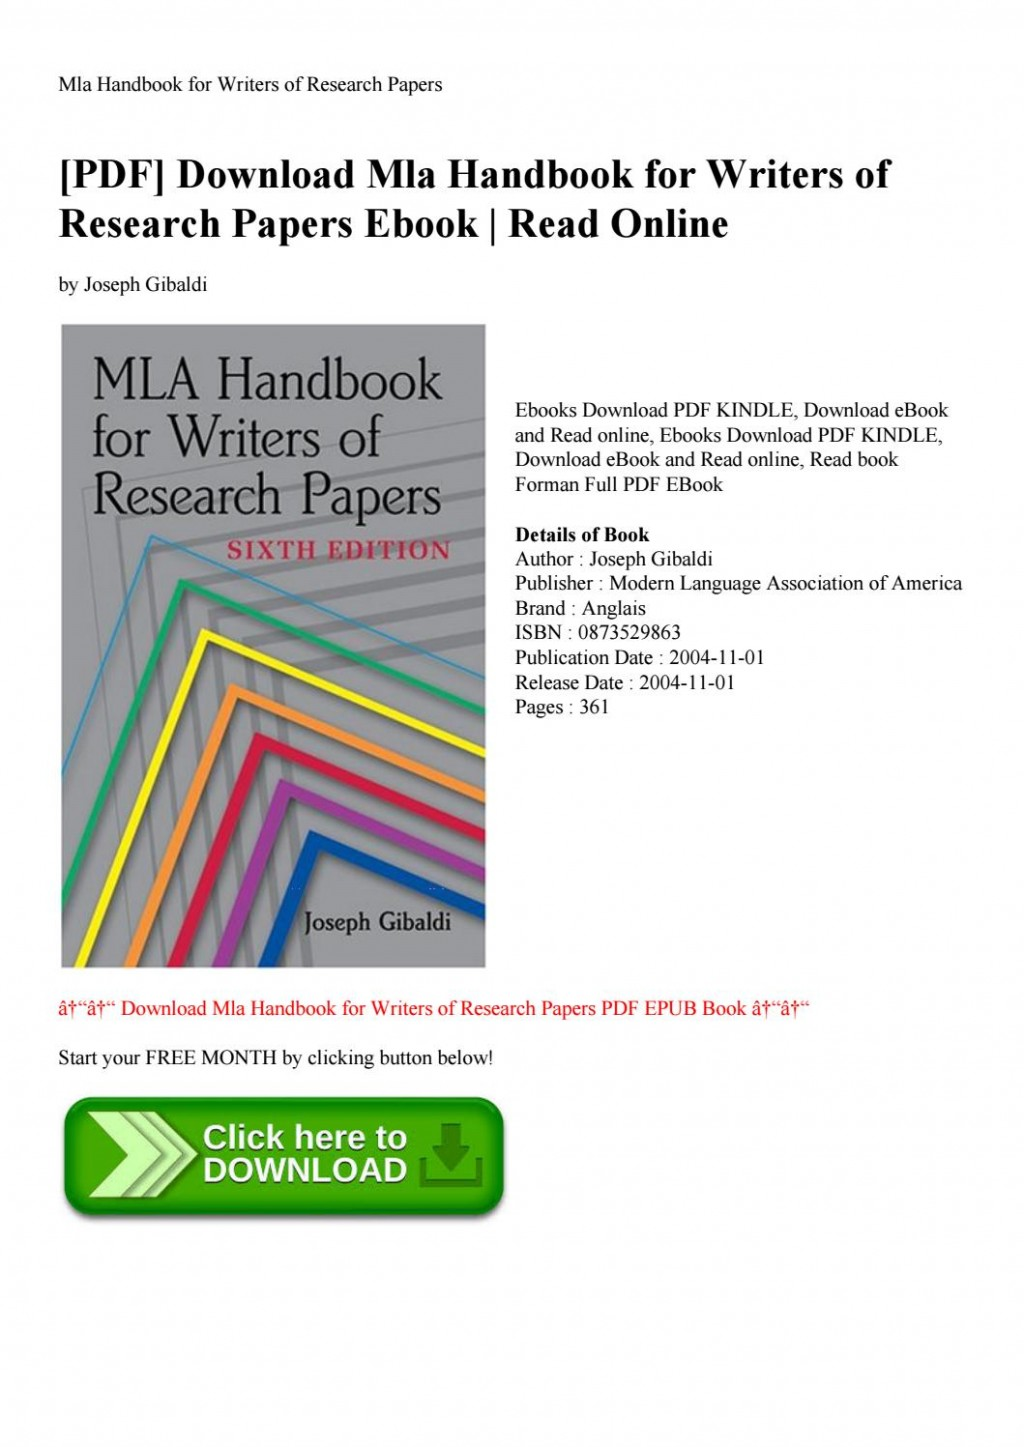 001 Page 1 Research Paper Mla Handbook For Writers Of Papers 6th Edition Pdf Marvelous Download Large